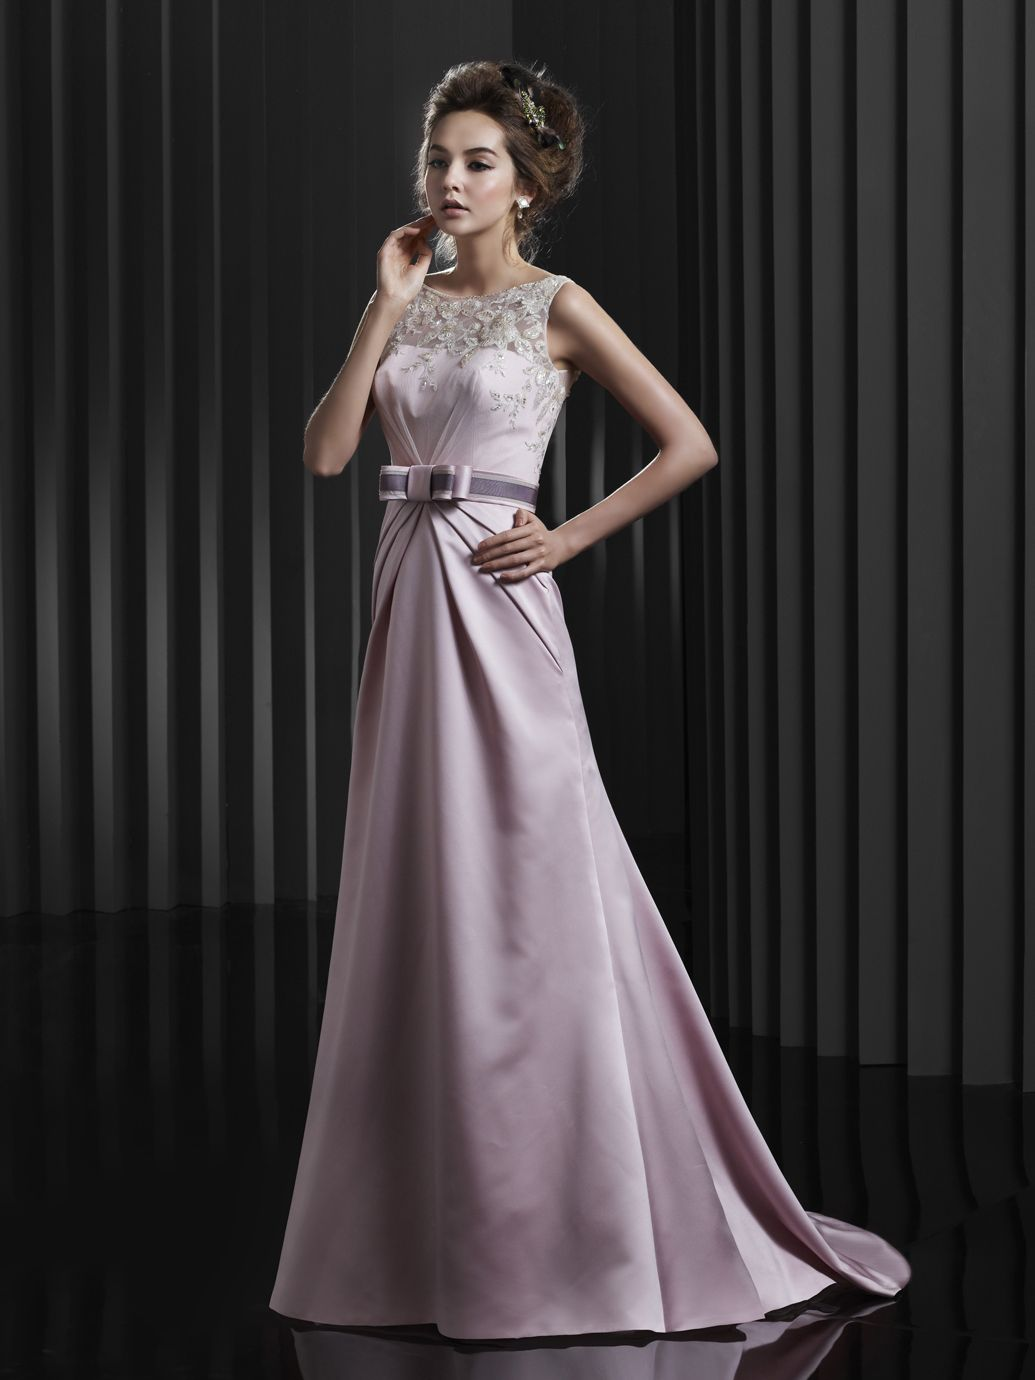 Rose colored wedding dress  BT  Beautiful Collection  Enzoani  Available Colours  Rose